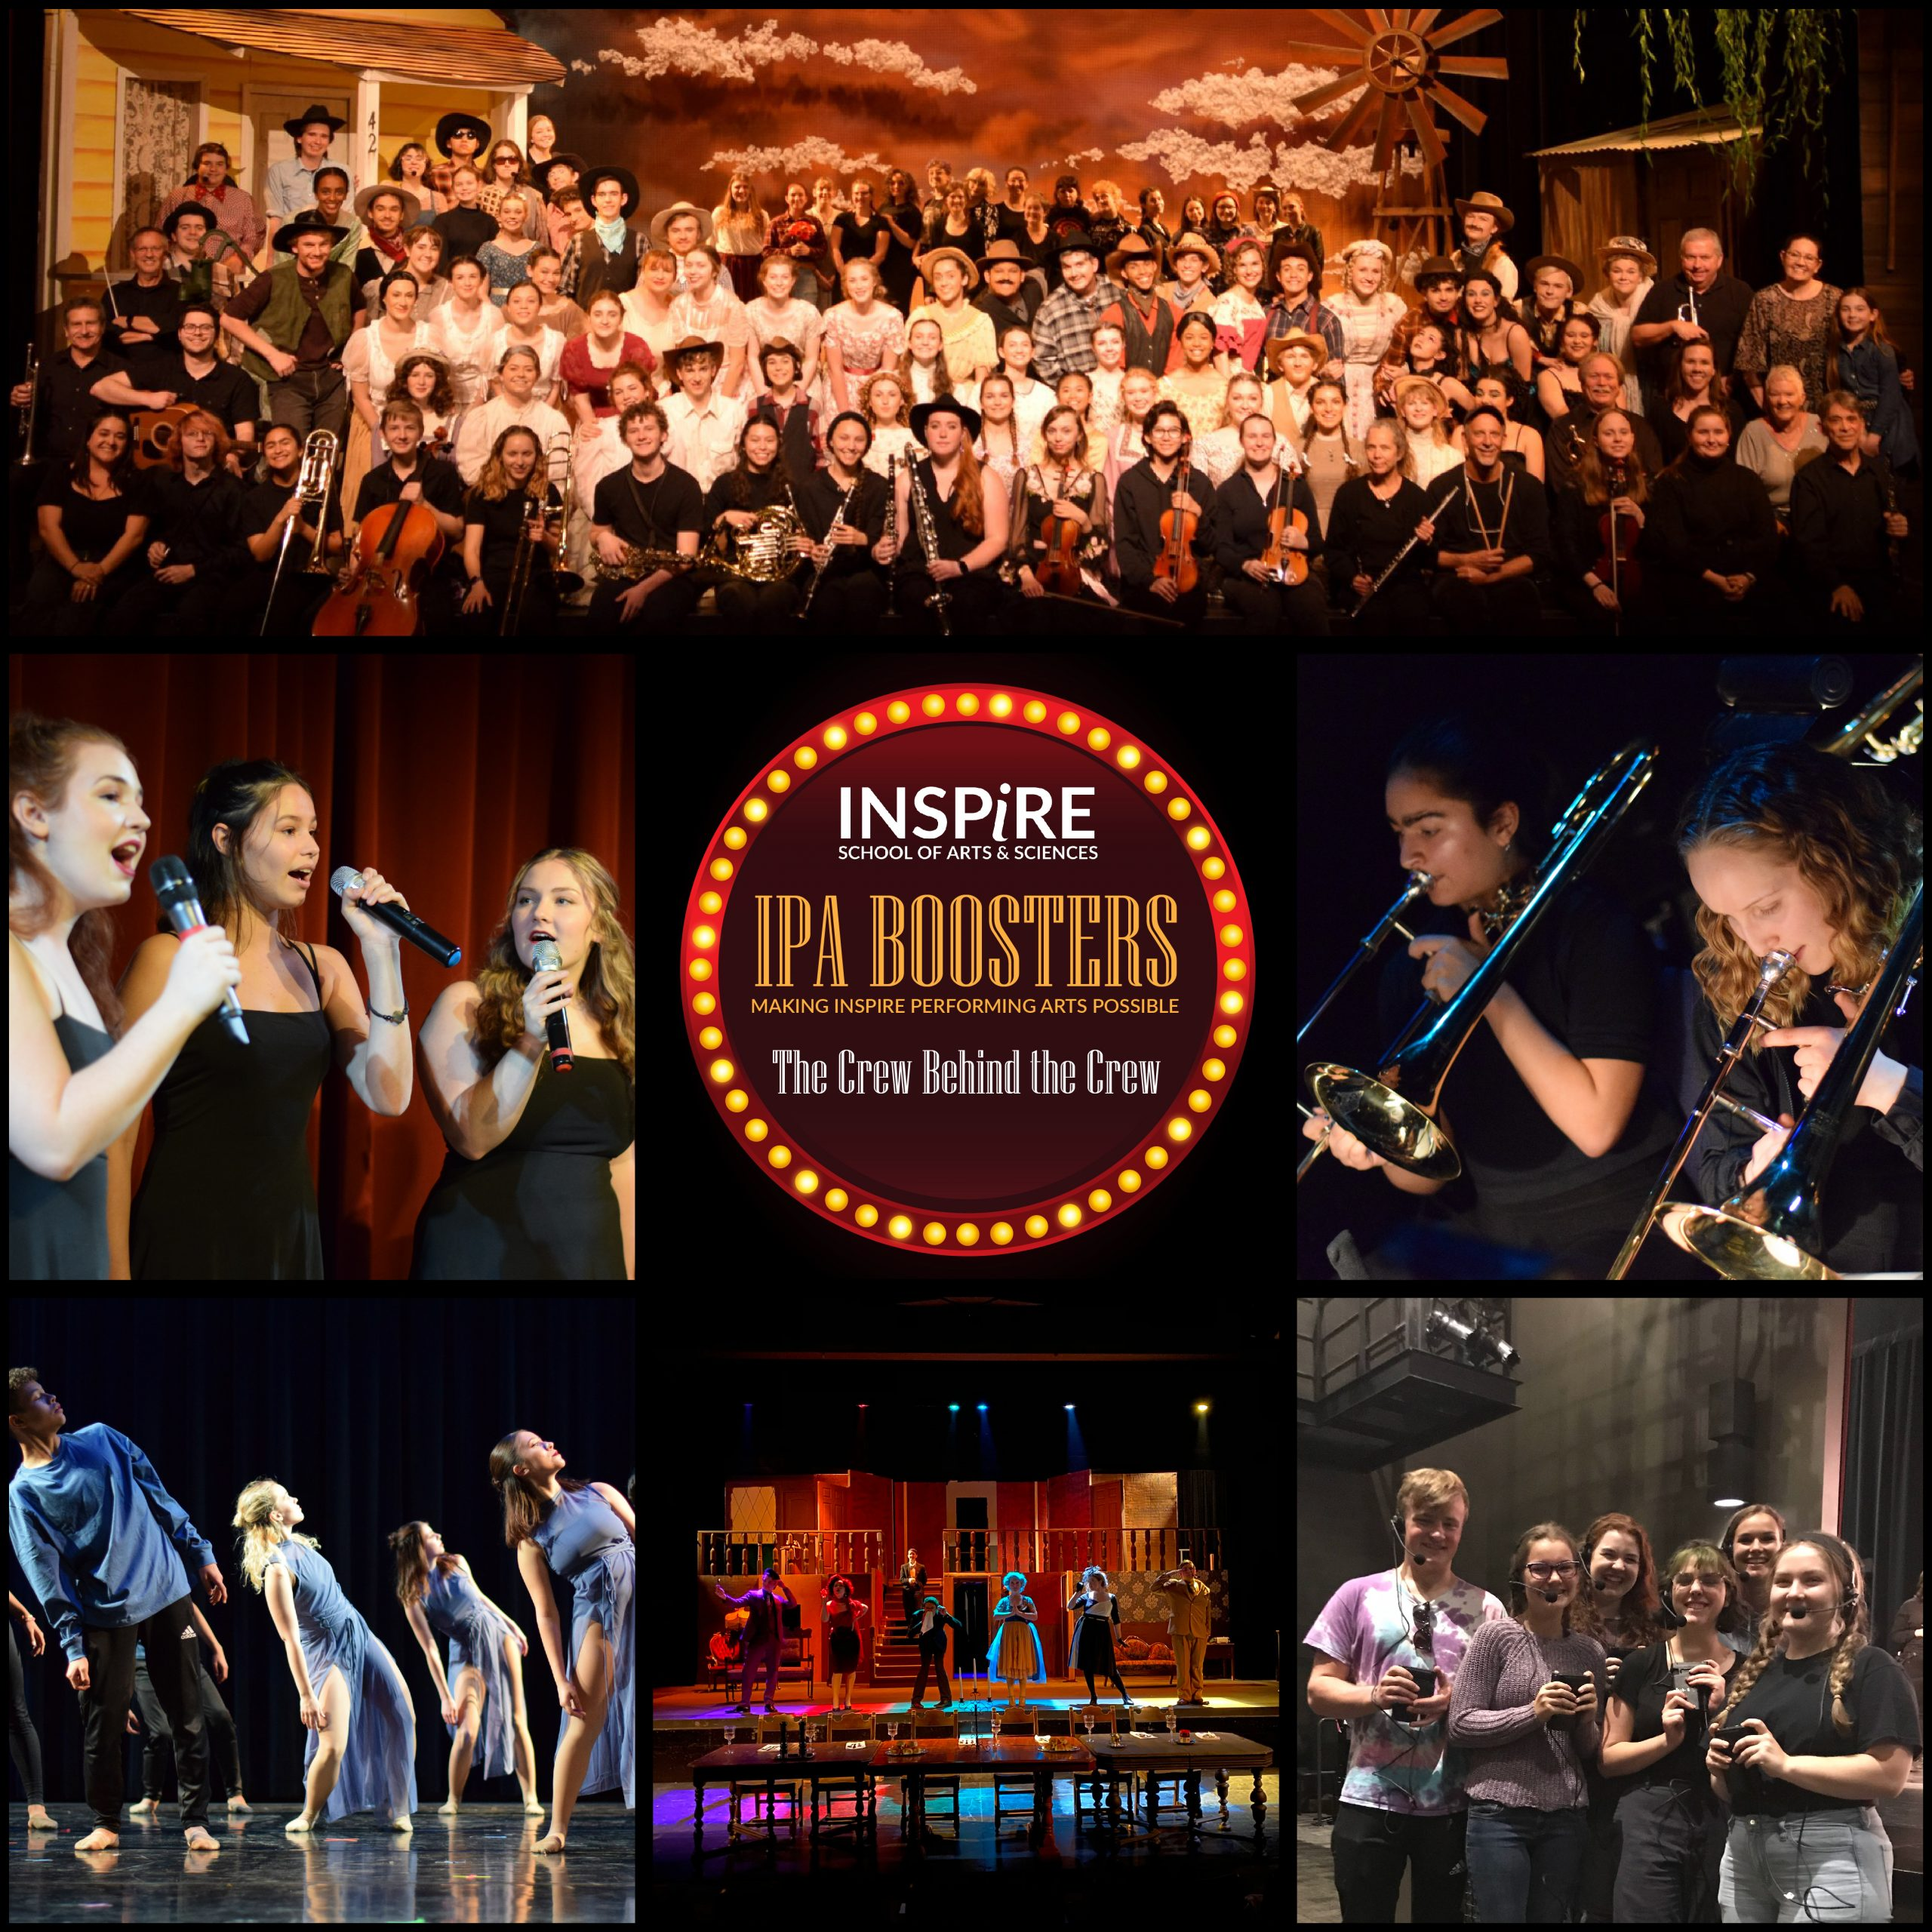 A graphic image with a collage of performing arts students with IPA Boosters logo in middle